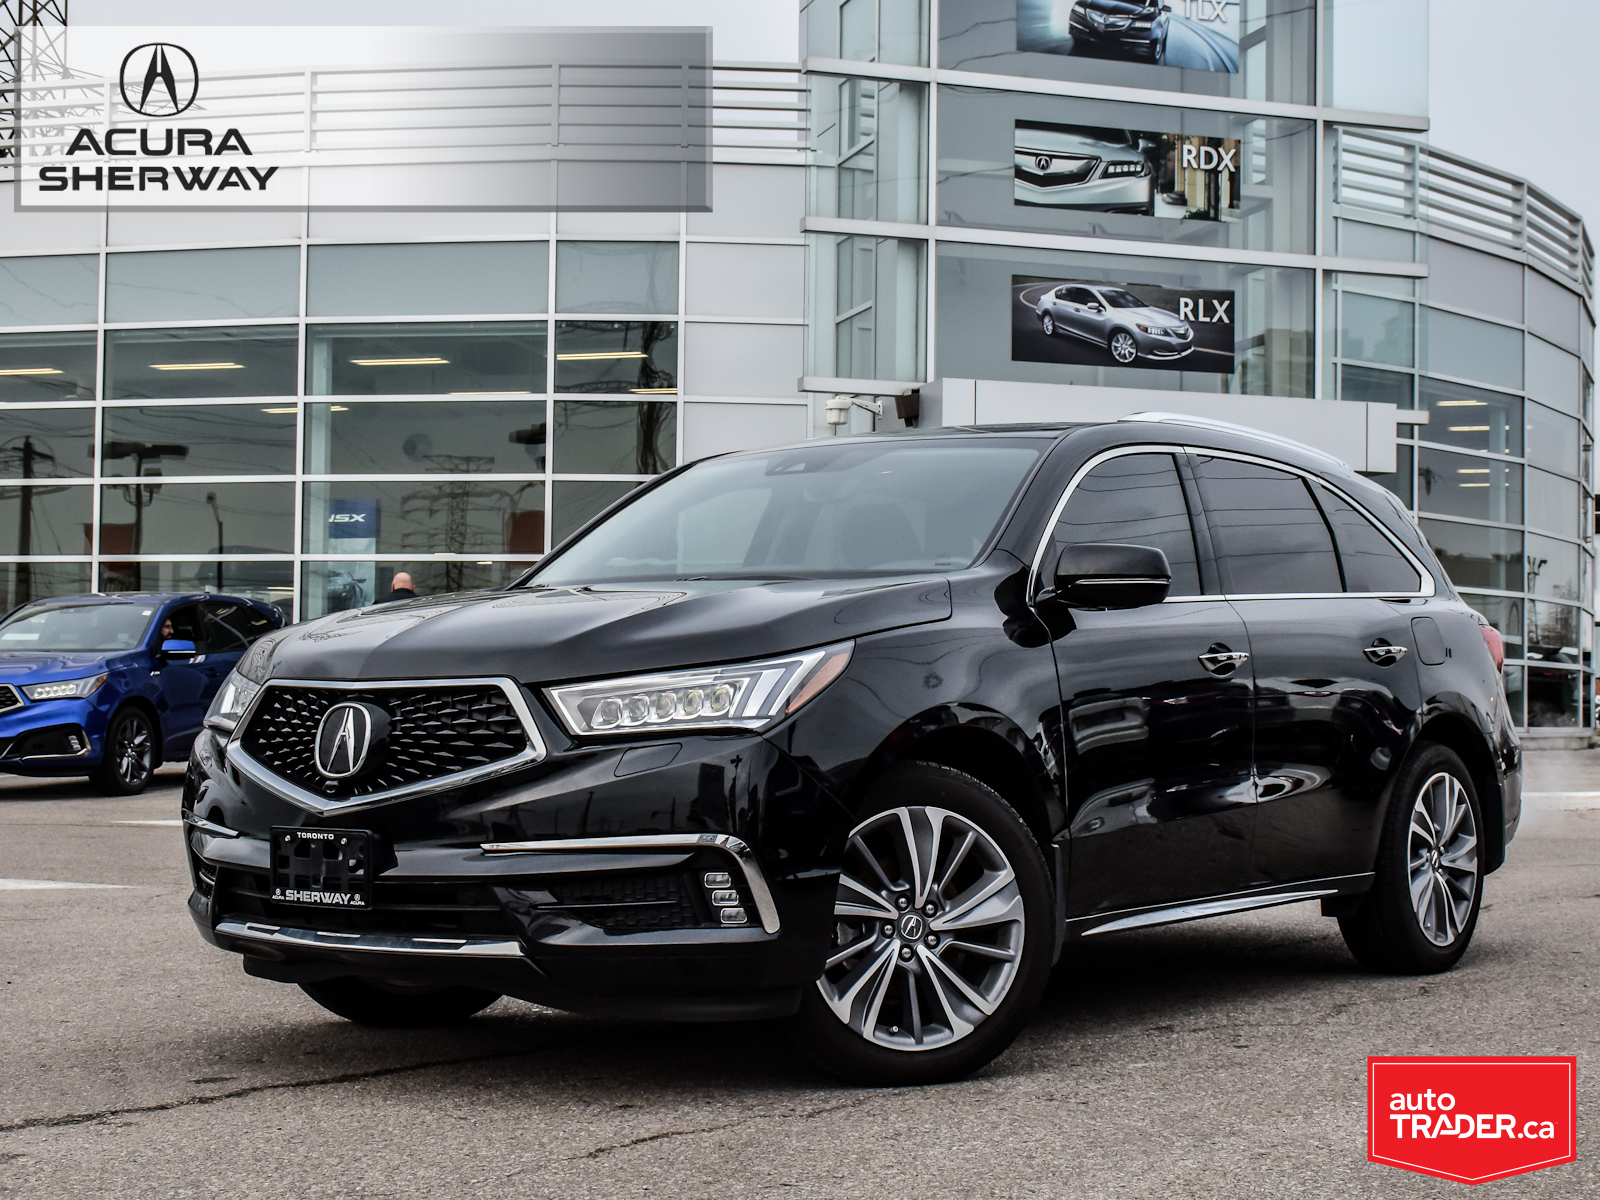 New 2018 Acura MDX 6P at Elite